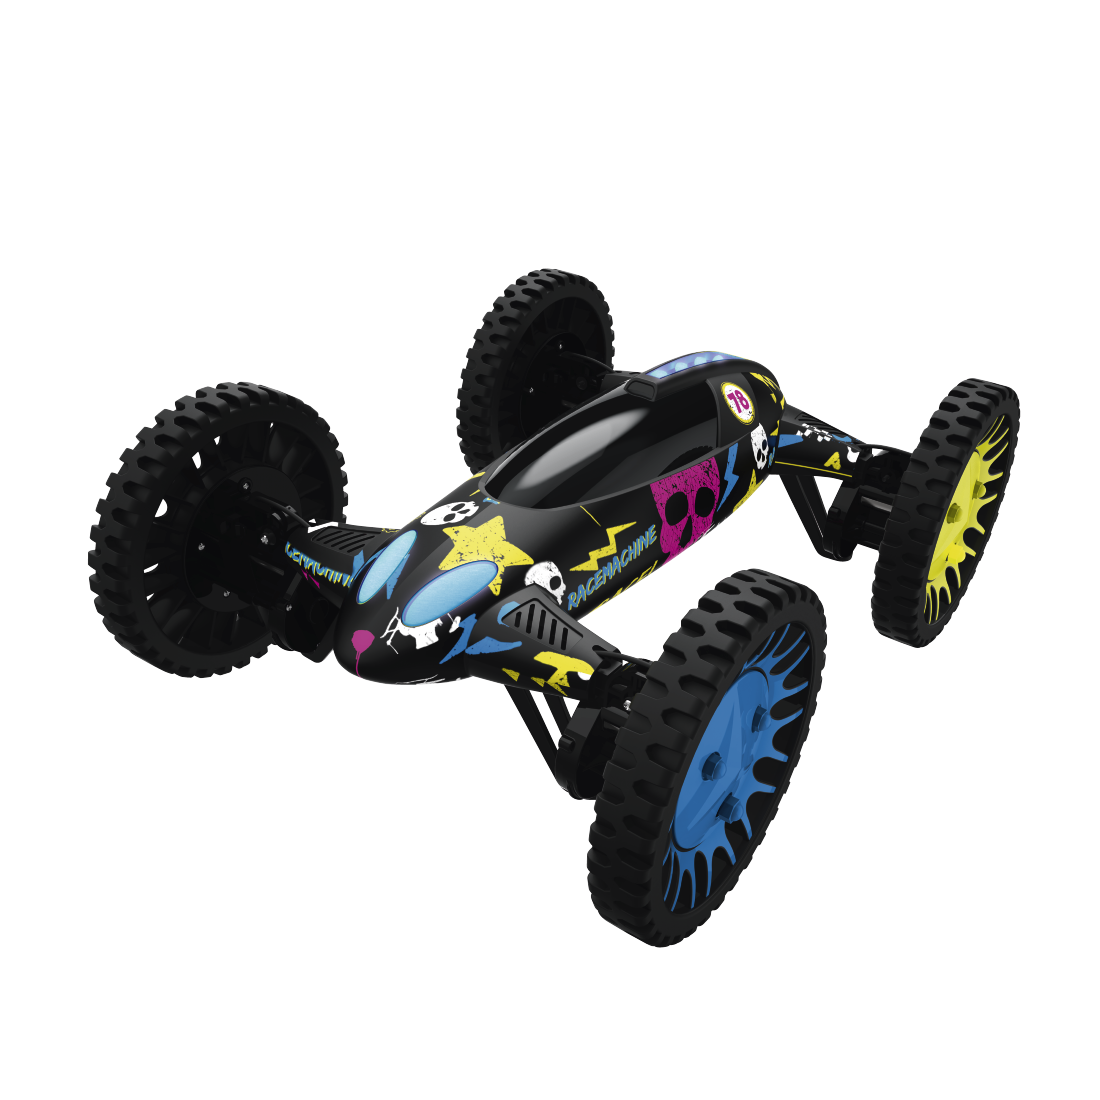 abx2 High-Res Image 2 - Hama, Racemachine 2-in-1 Quadrocopter/RC Car, 6-Axis Gyro-Sensor, 720p Camera